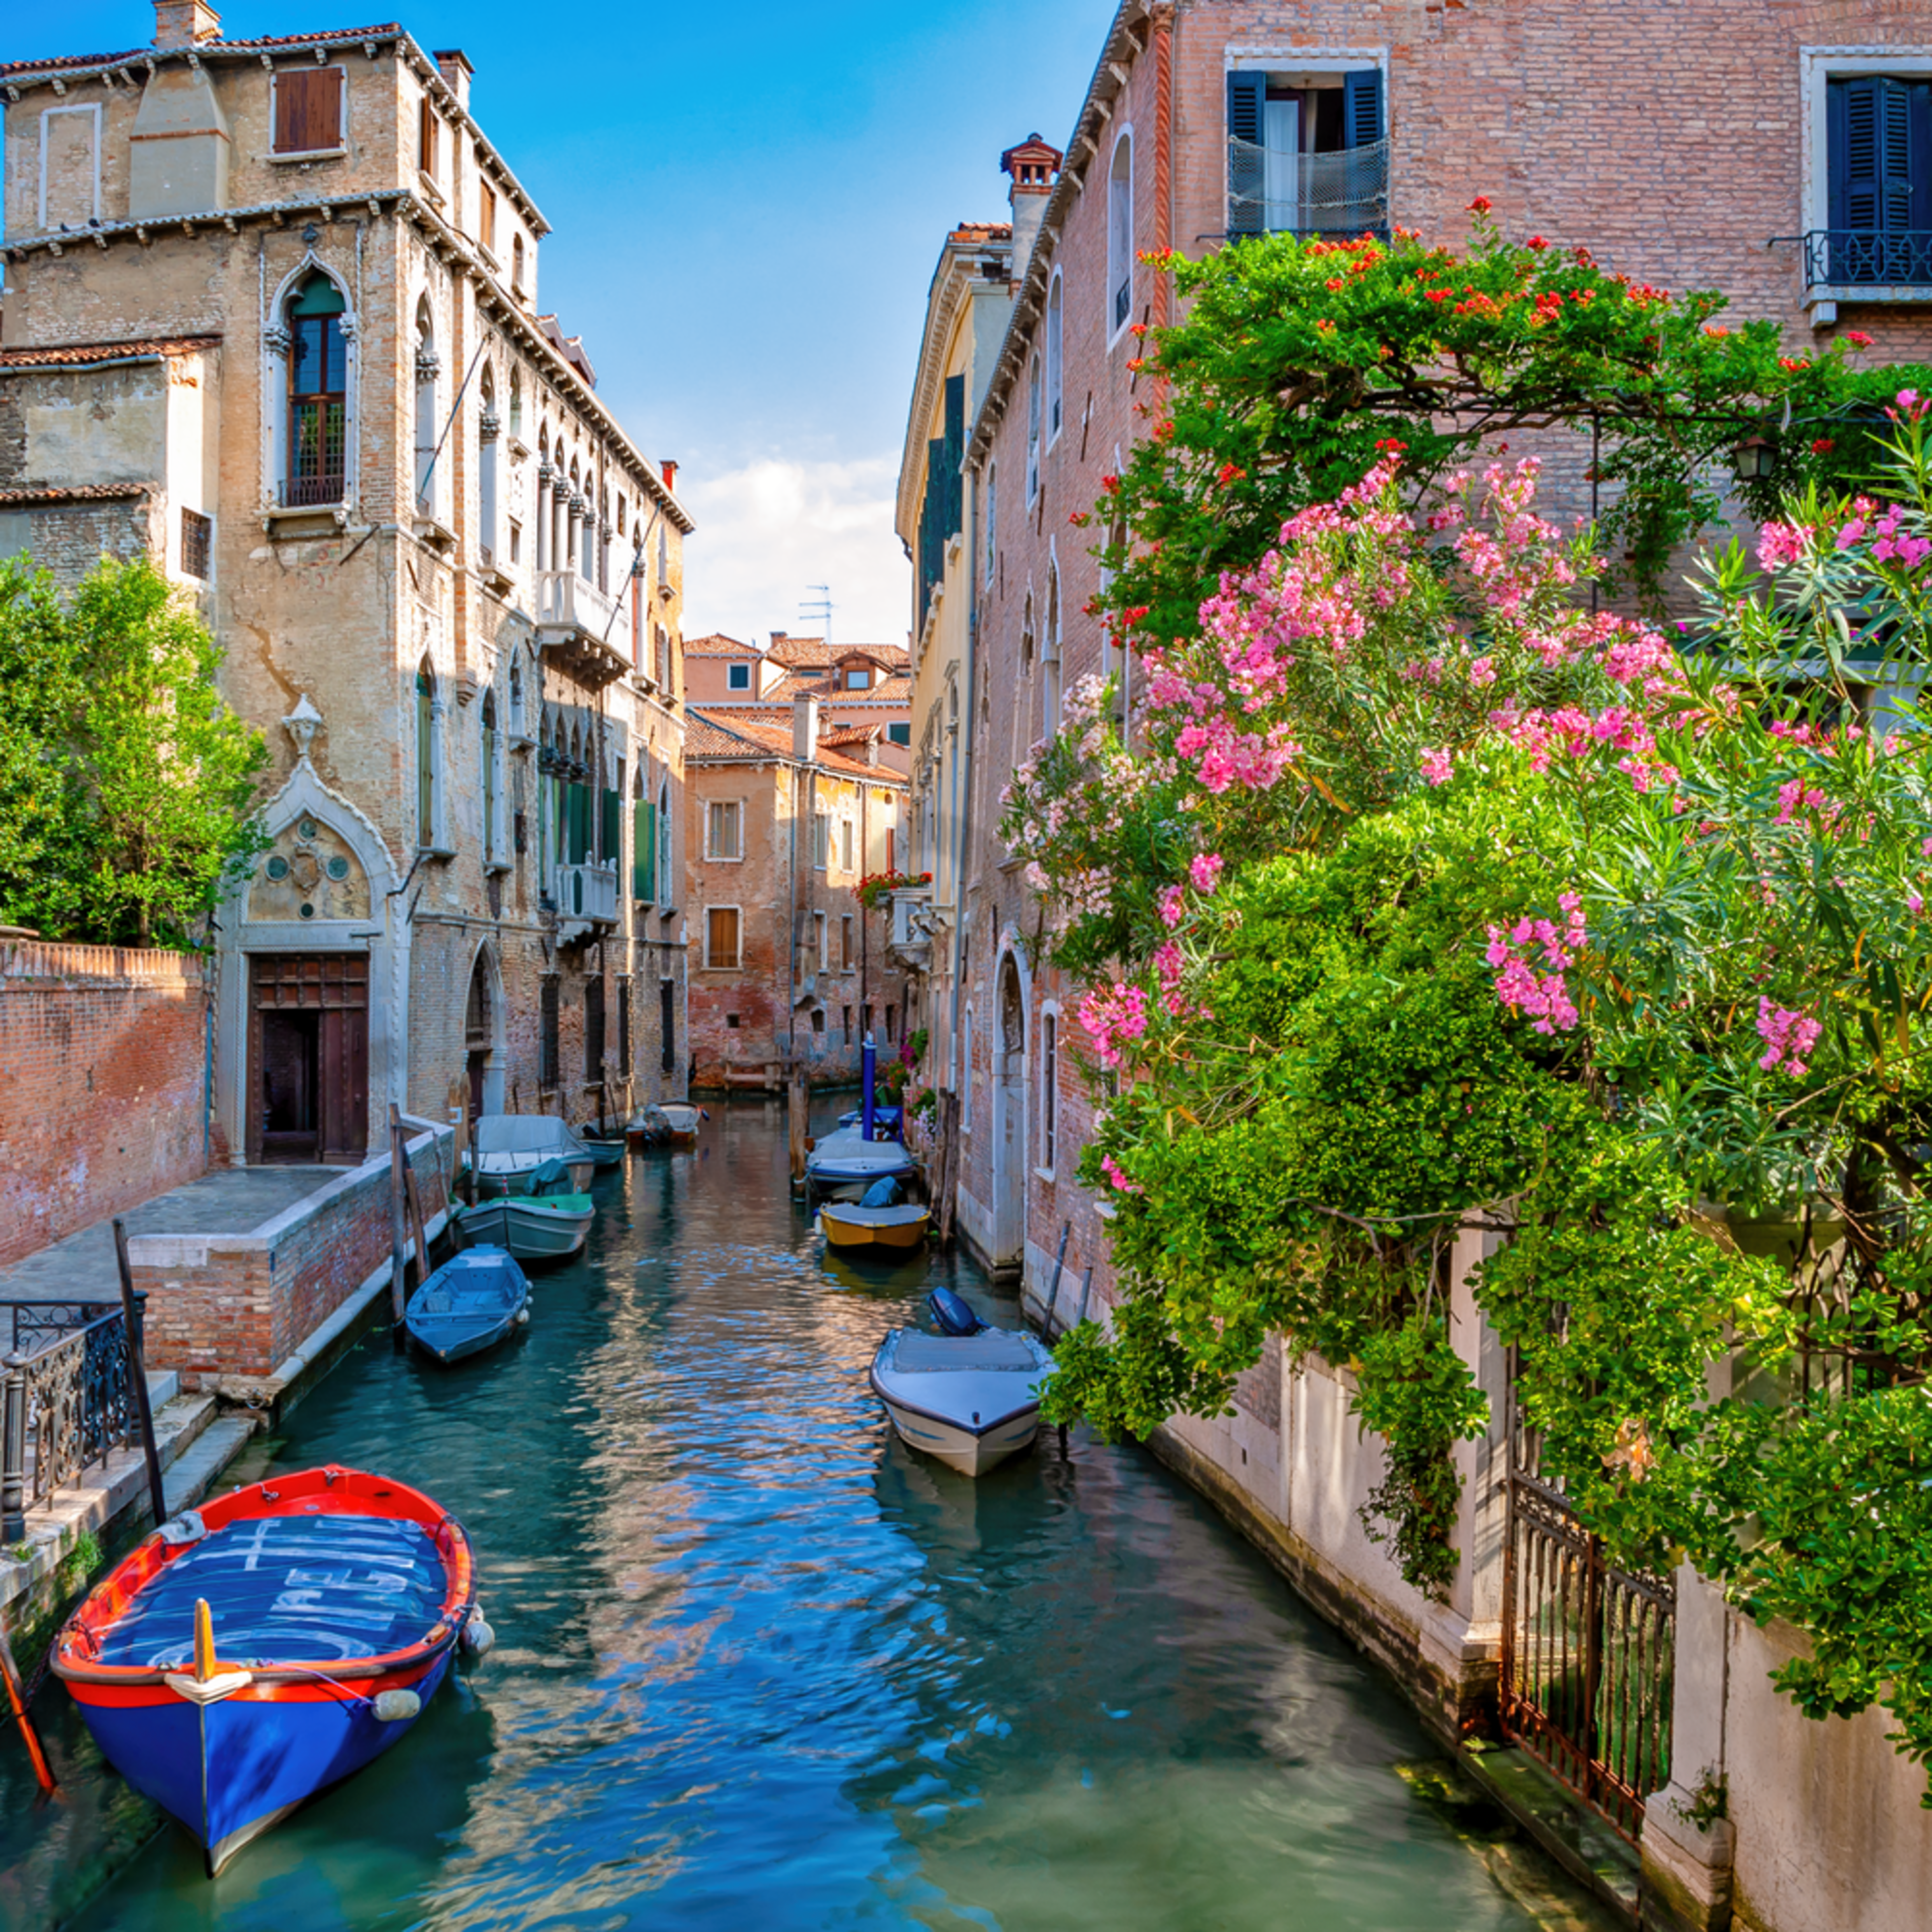 Canal and flowers venice italy ccnsde